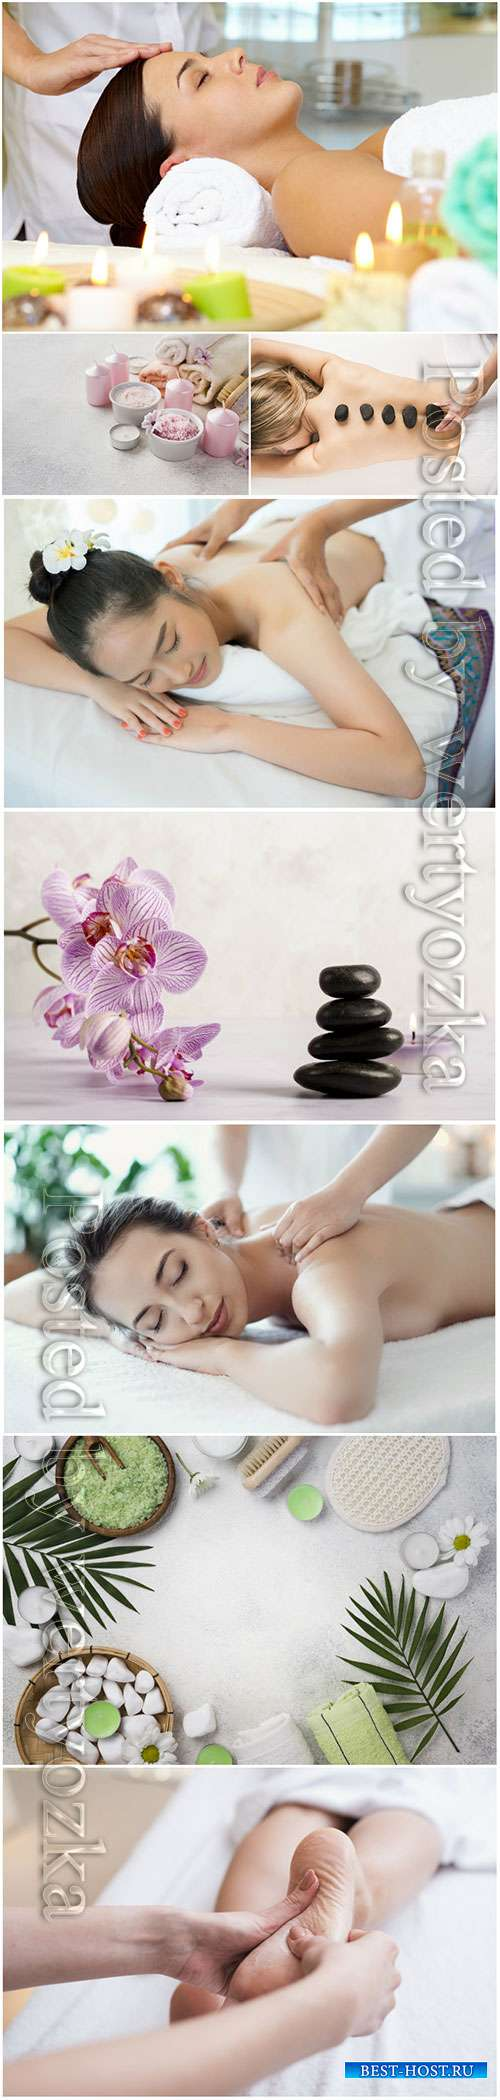 Spa set stock photo